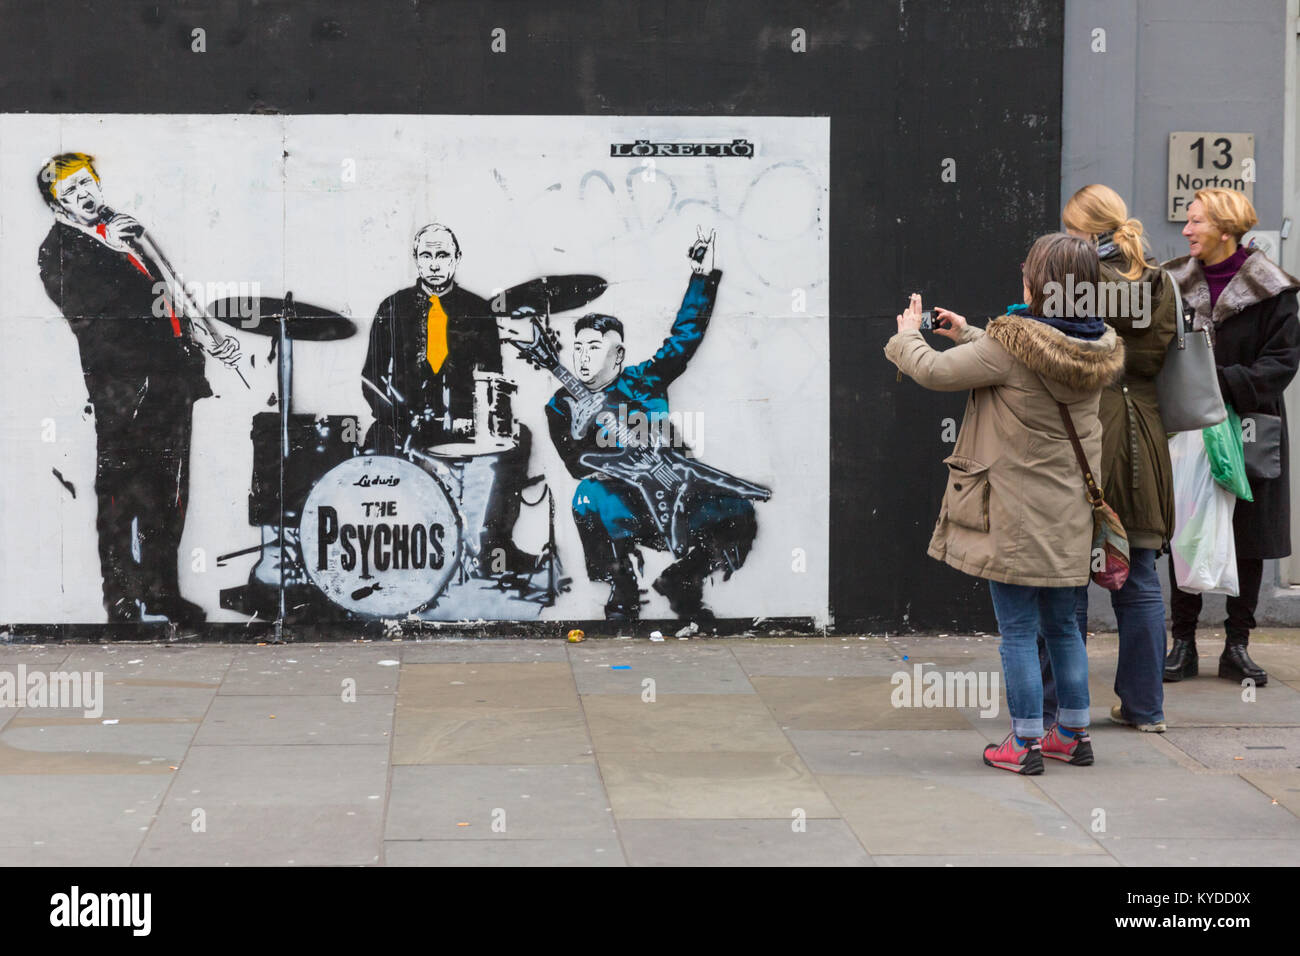 Shoreditch london 14th jan 2018 londoners and tourists react to and interact with